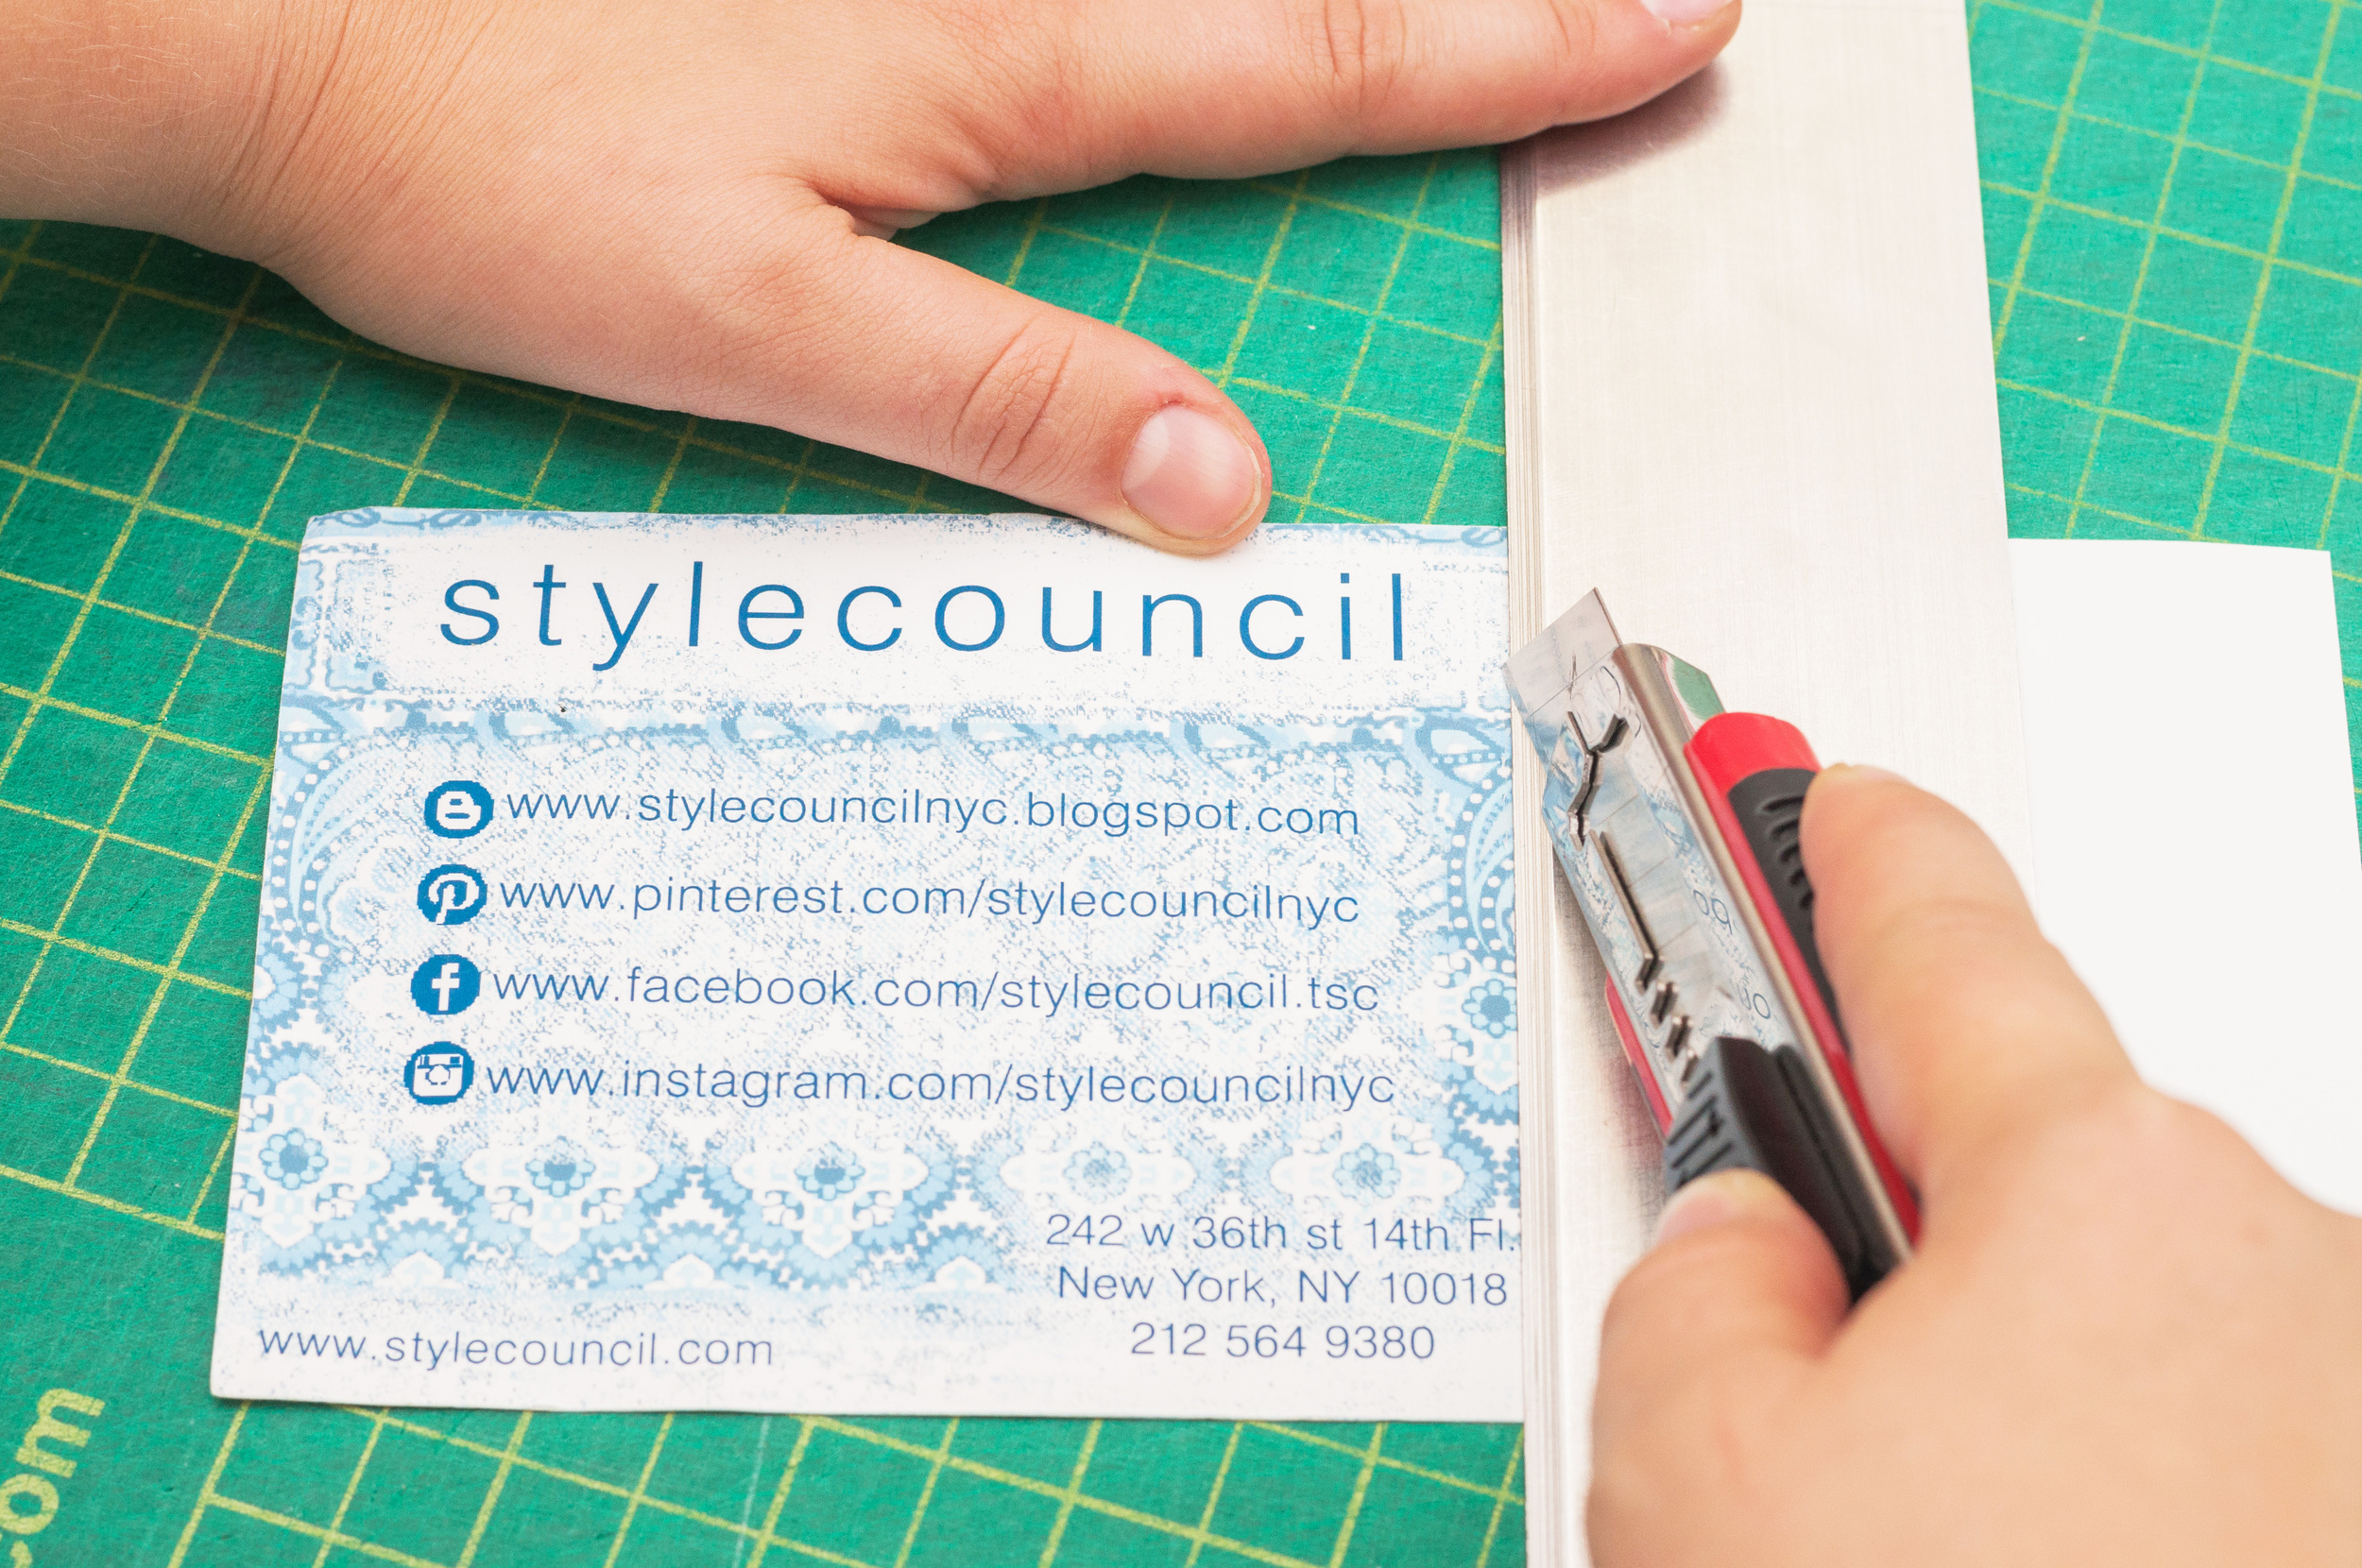 stylcecouncil